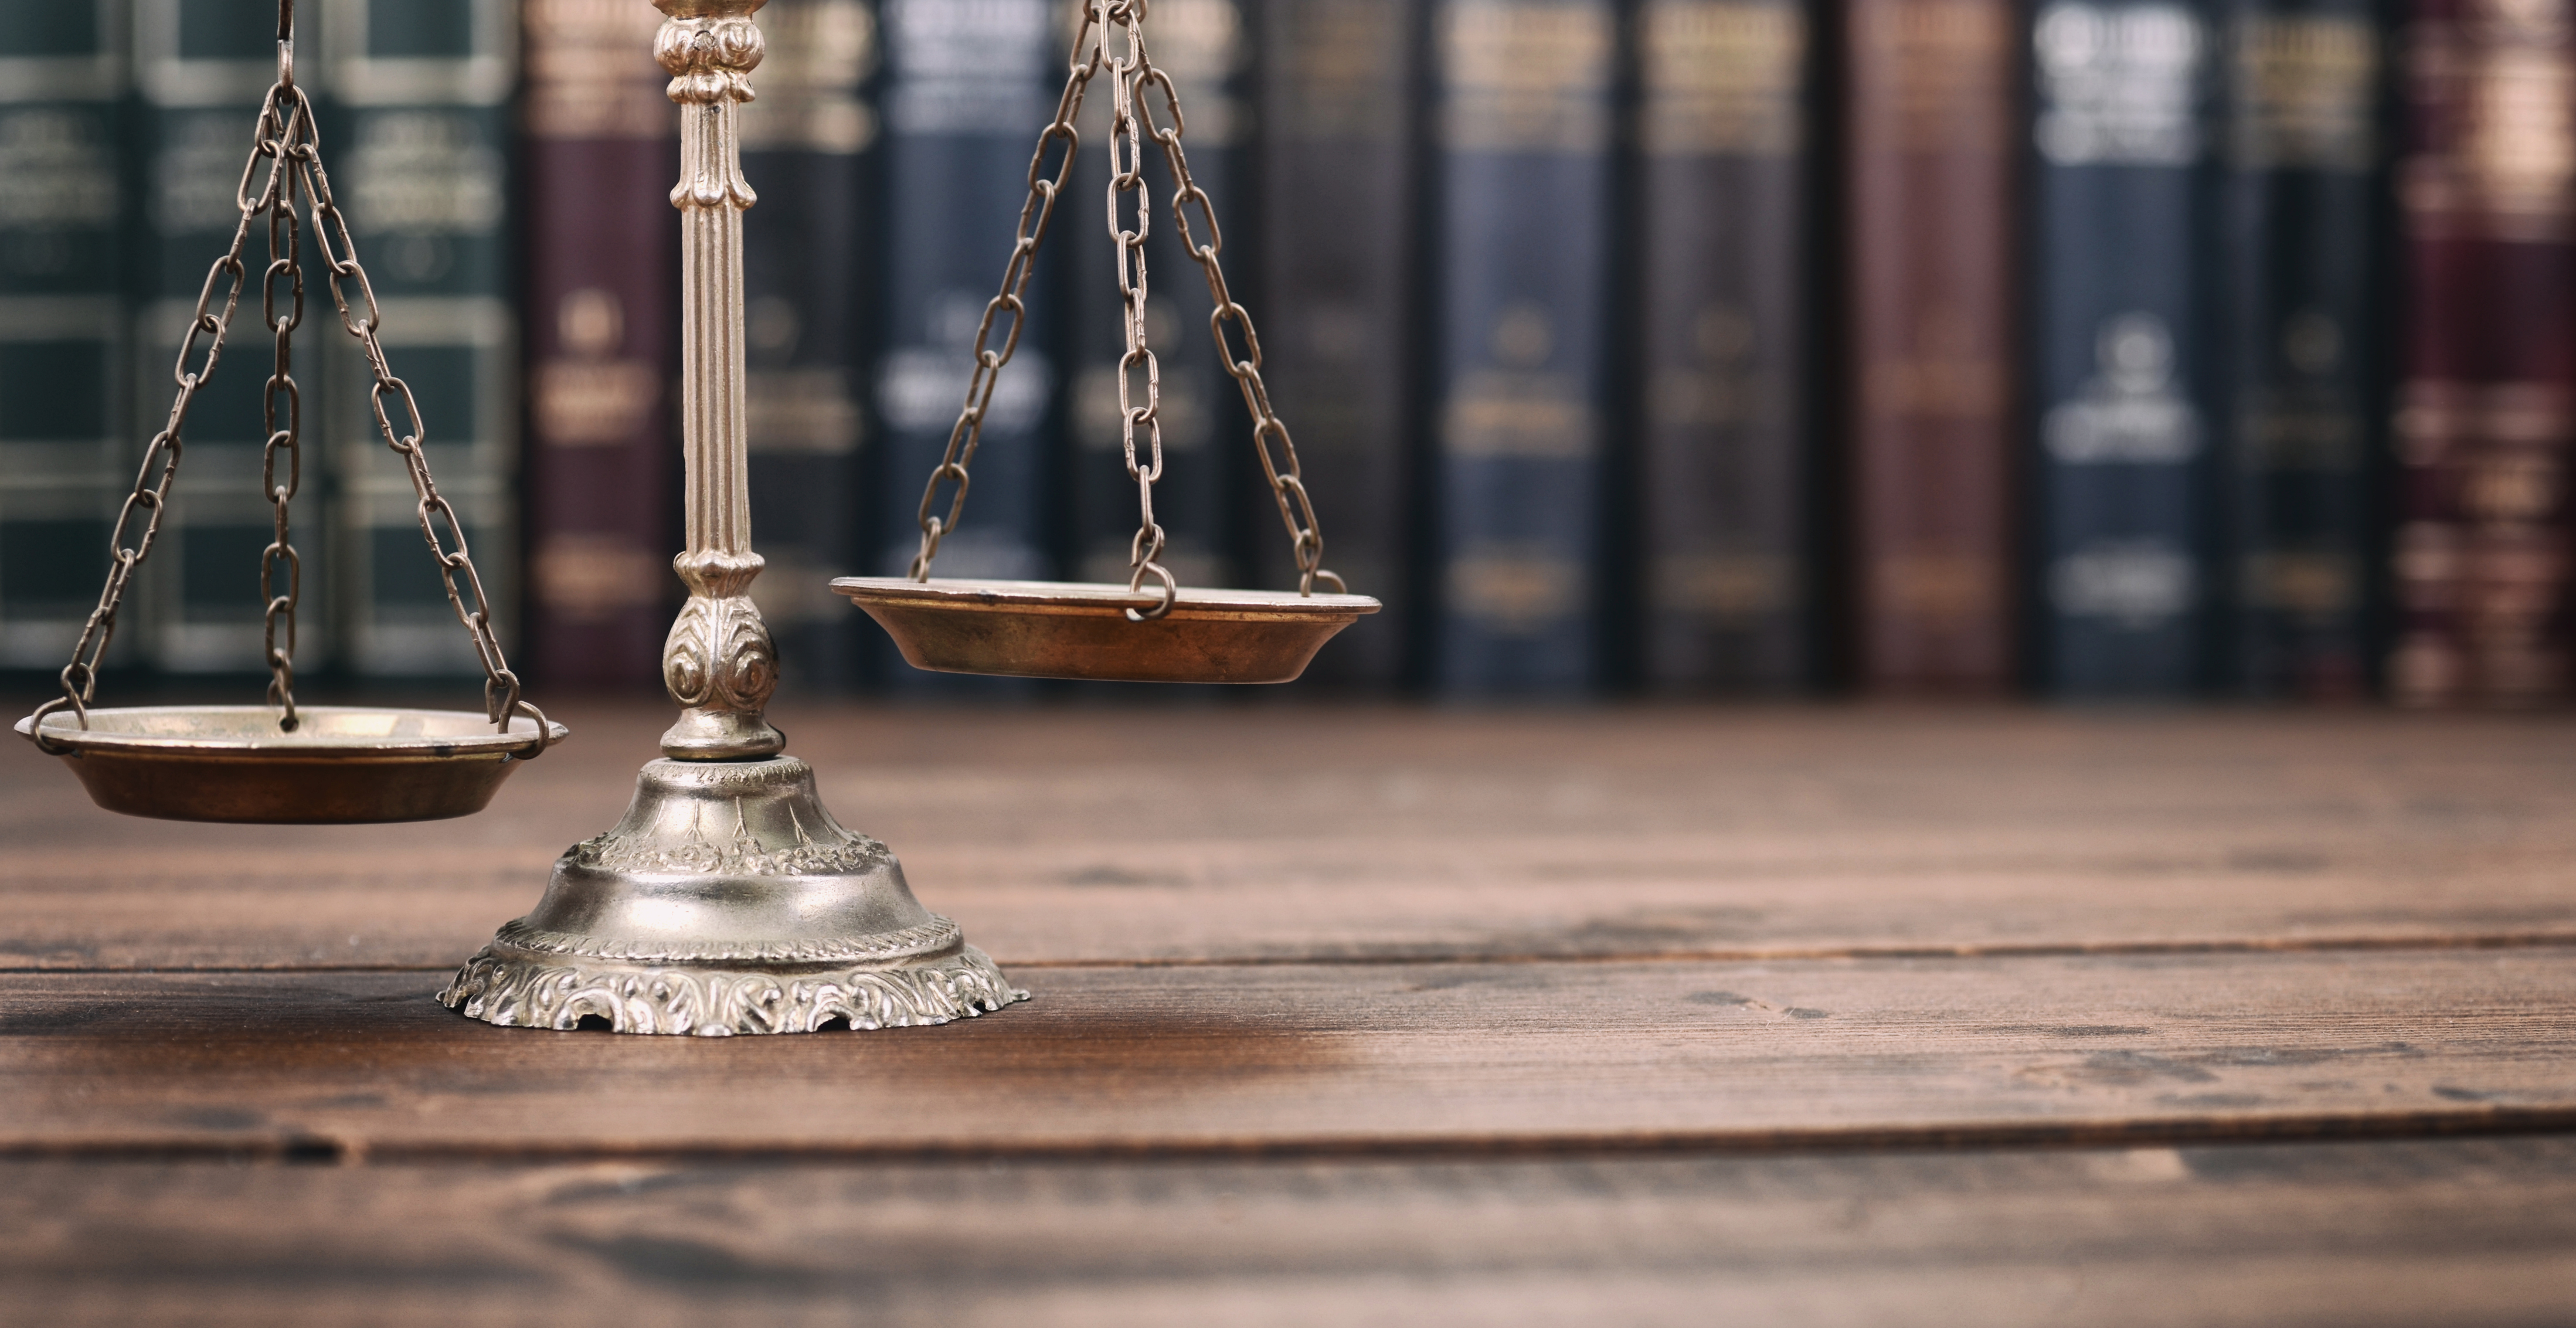 Scales of Justice and Law books on a wooden background